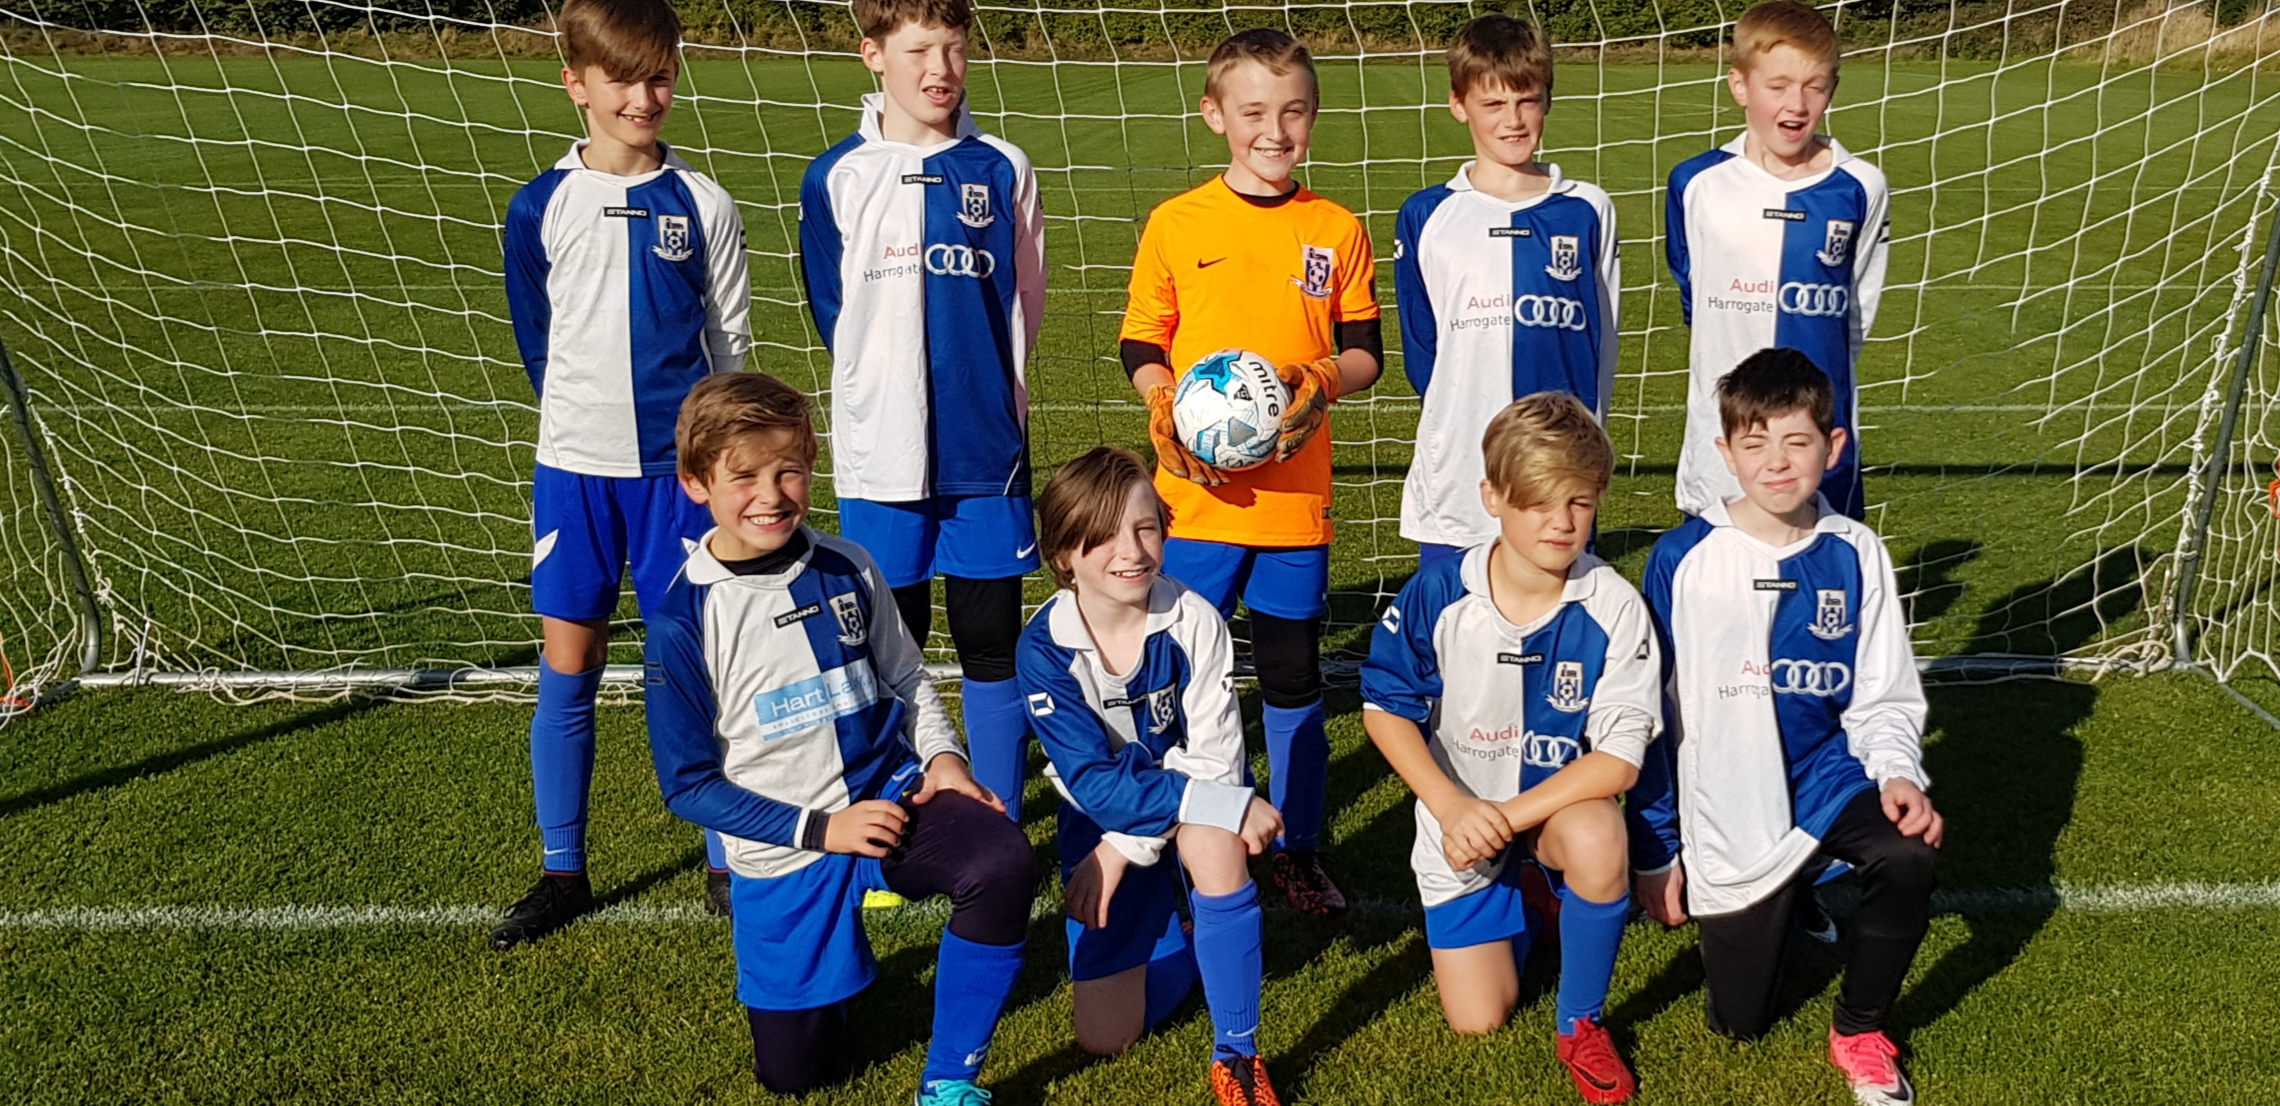 Sep 2018: The U12s team that beat Knaresborough Celtic 10-2 on September 30th